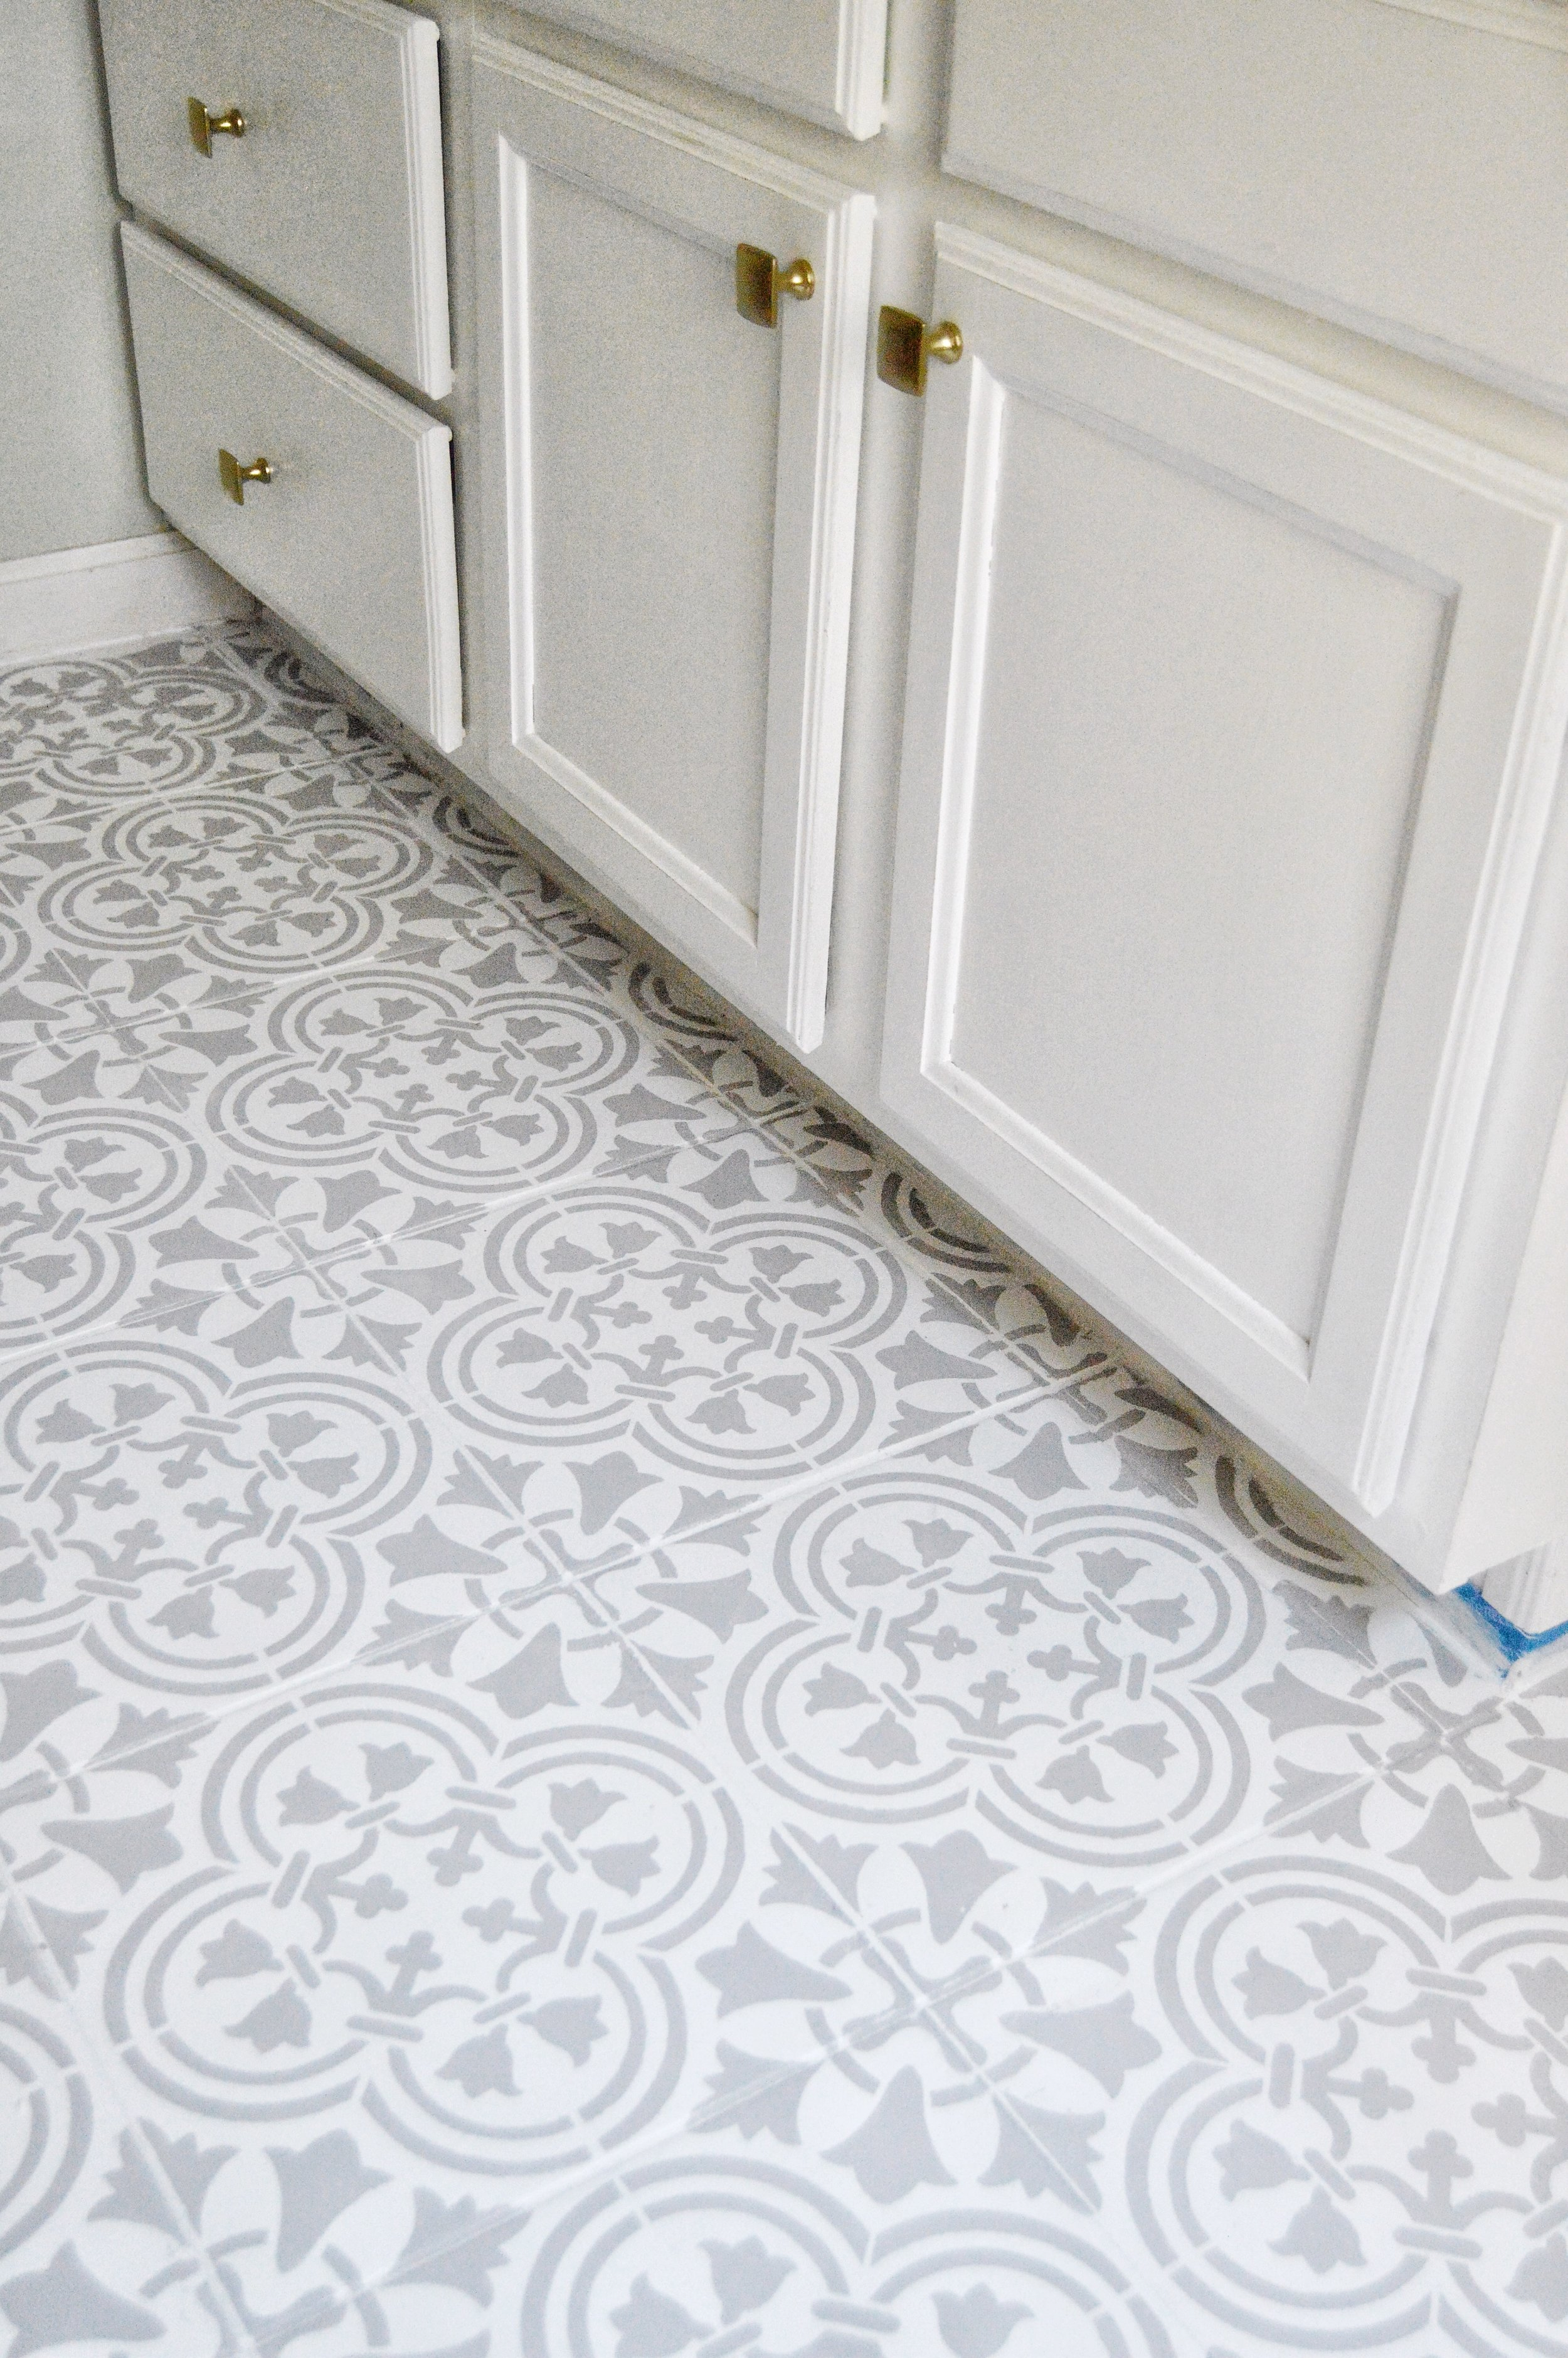 Ideas For Covering Up Tile Floors Without Removing It The Decor Formula